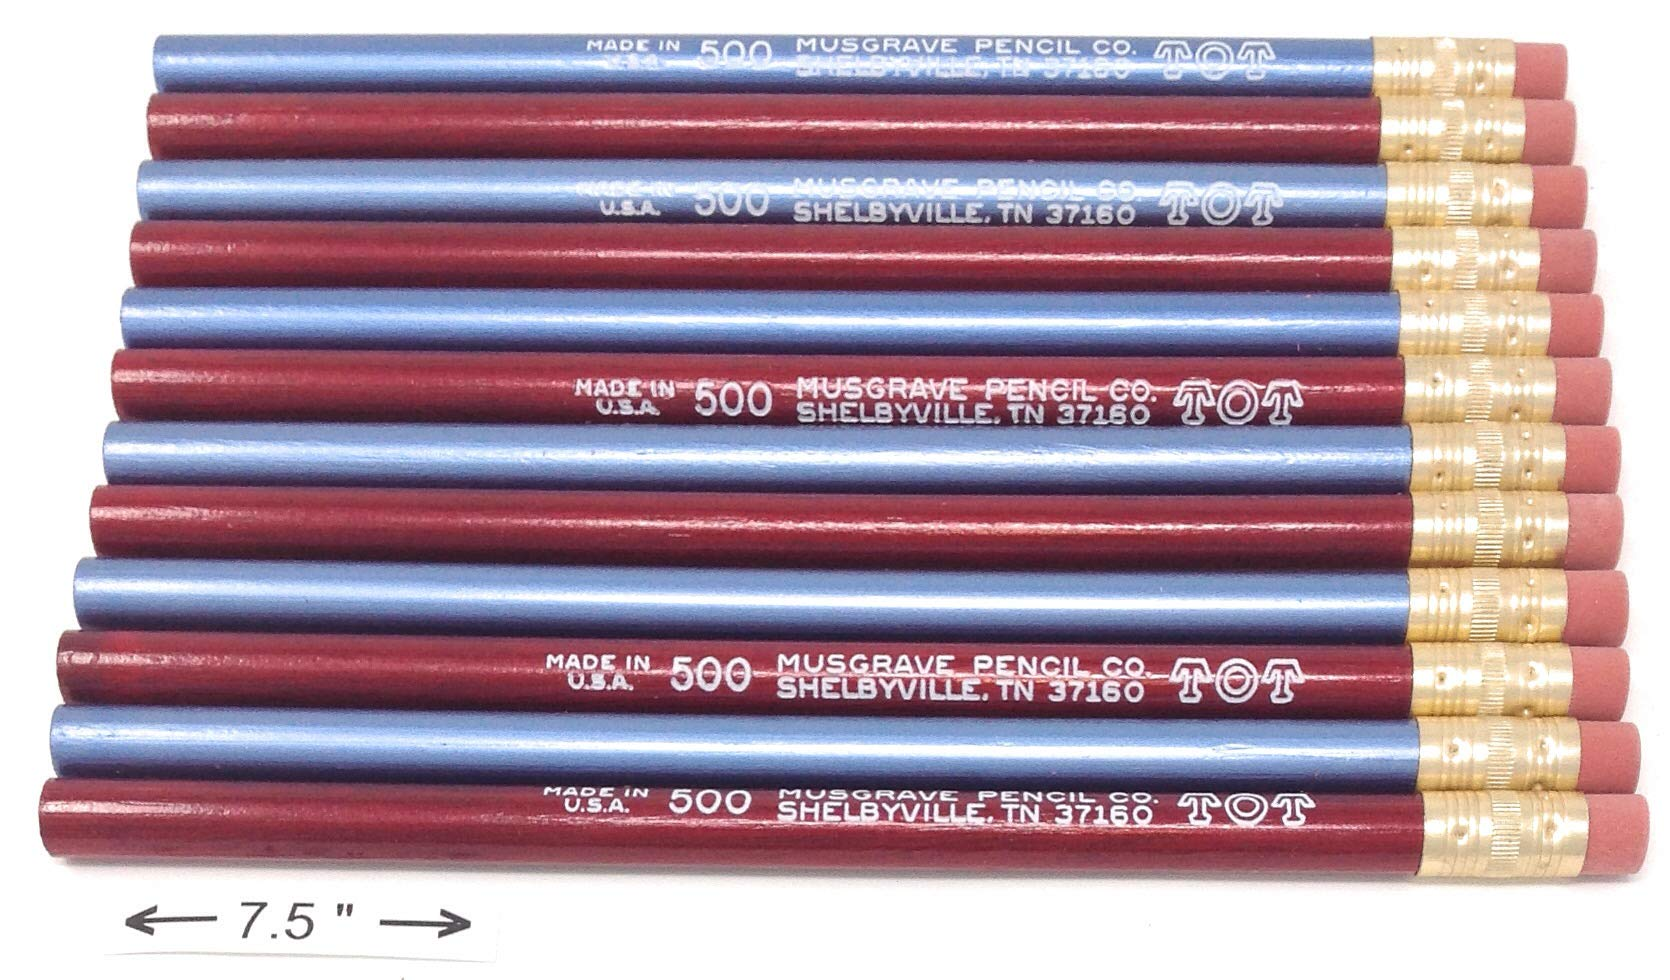 Jumbo TOT pencil, Round, 10mm Metallic Blue and Red, Med Soft Core (Box of 72)